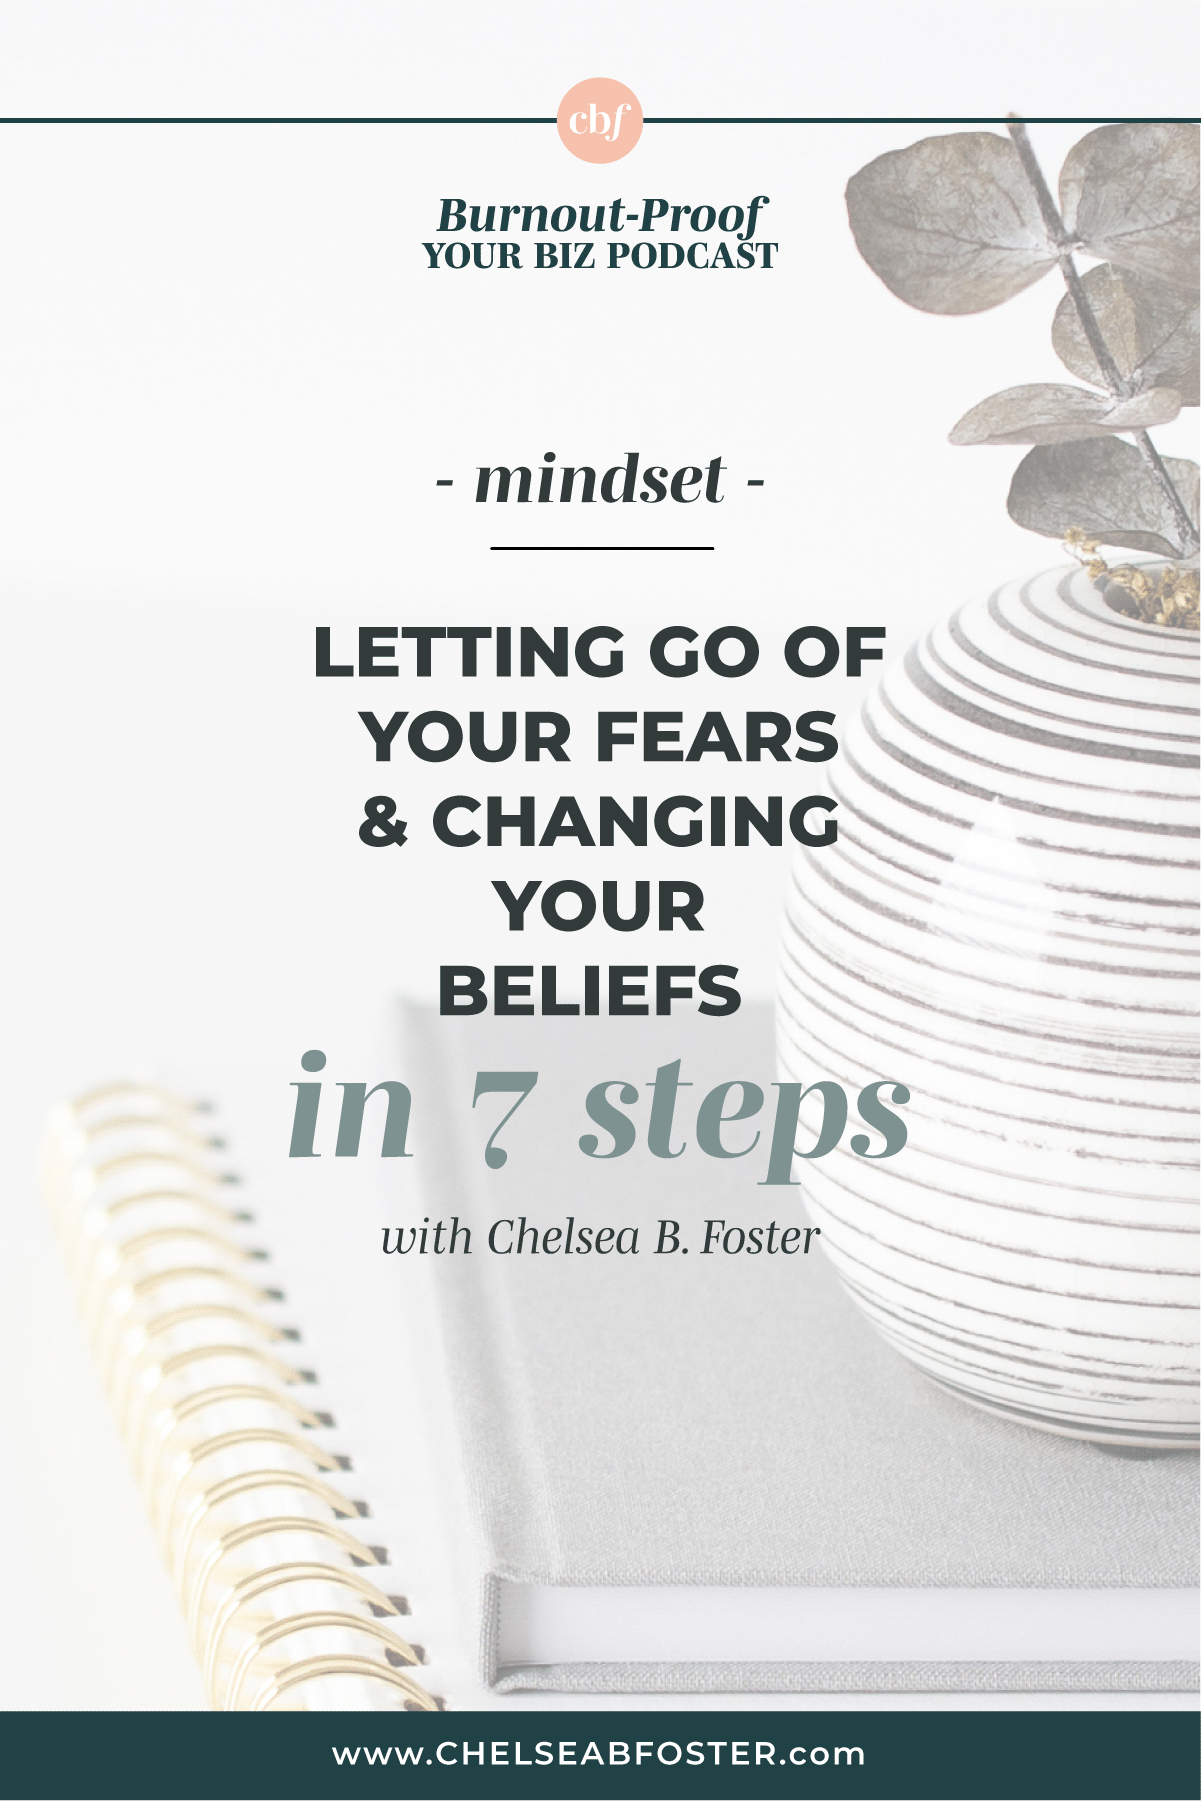 Burnout-Proof Your Biz with Chelsea B Foster | Letting Go of Your Fears & Changing Your Beliefs in 7 Steps